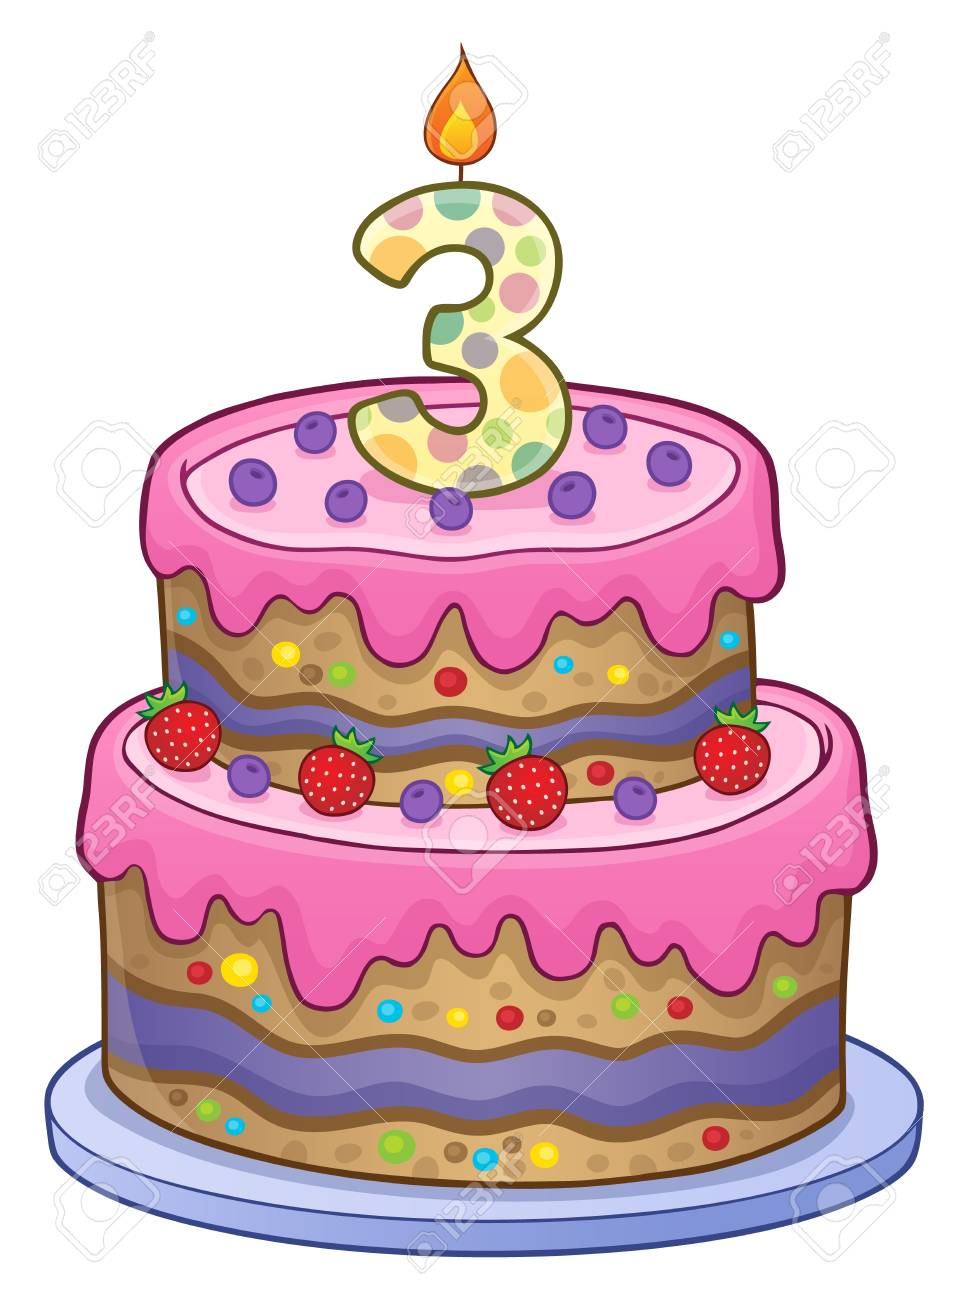 Two Layered Birthday Cake For 3 Years Old Royalty Free Cliparts Vectors And Stock Illustration Image 90461819